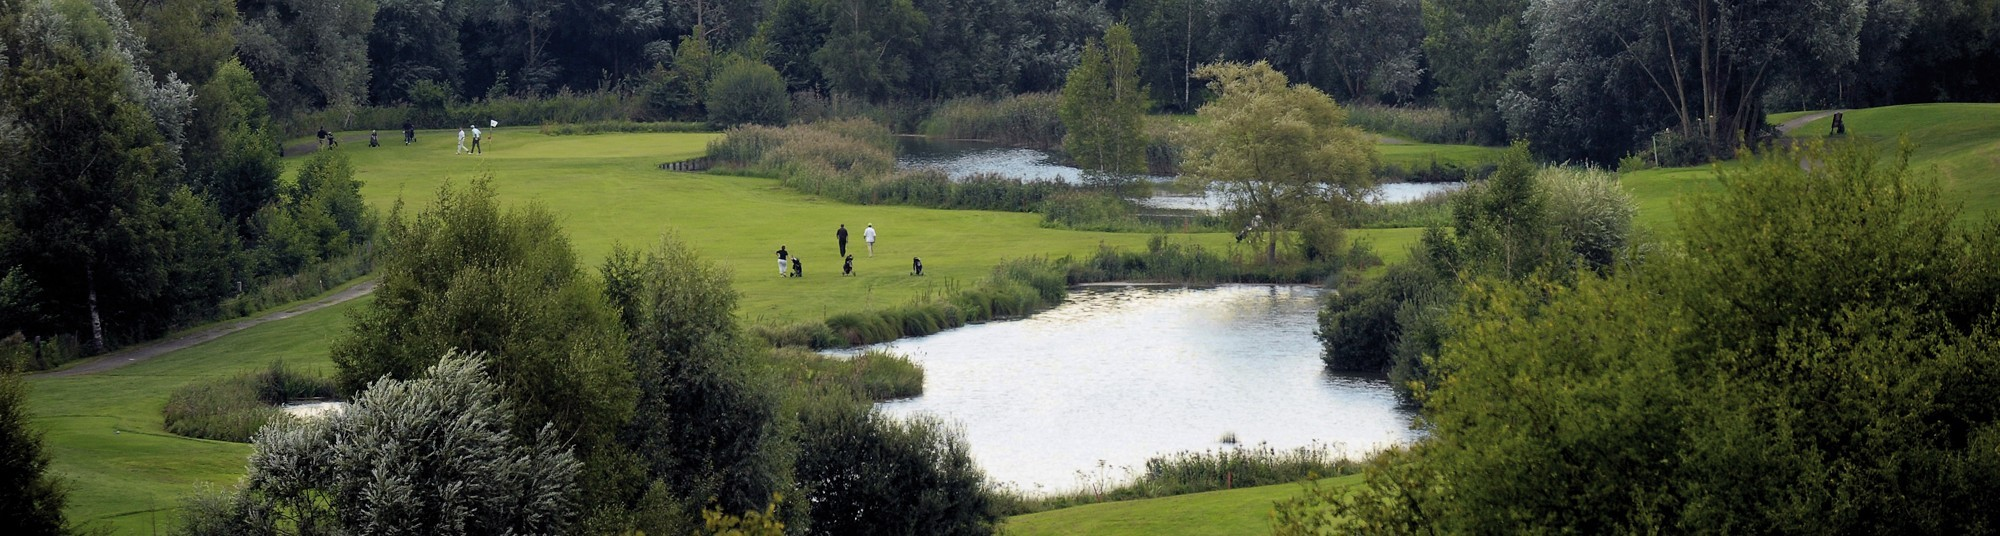 Overview of golf course named Golf d'Ableiges